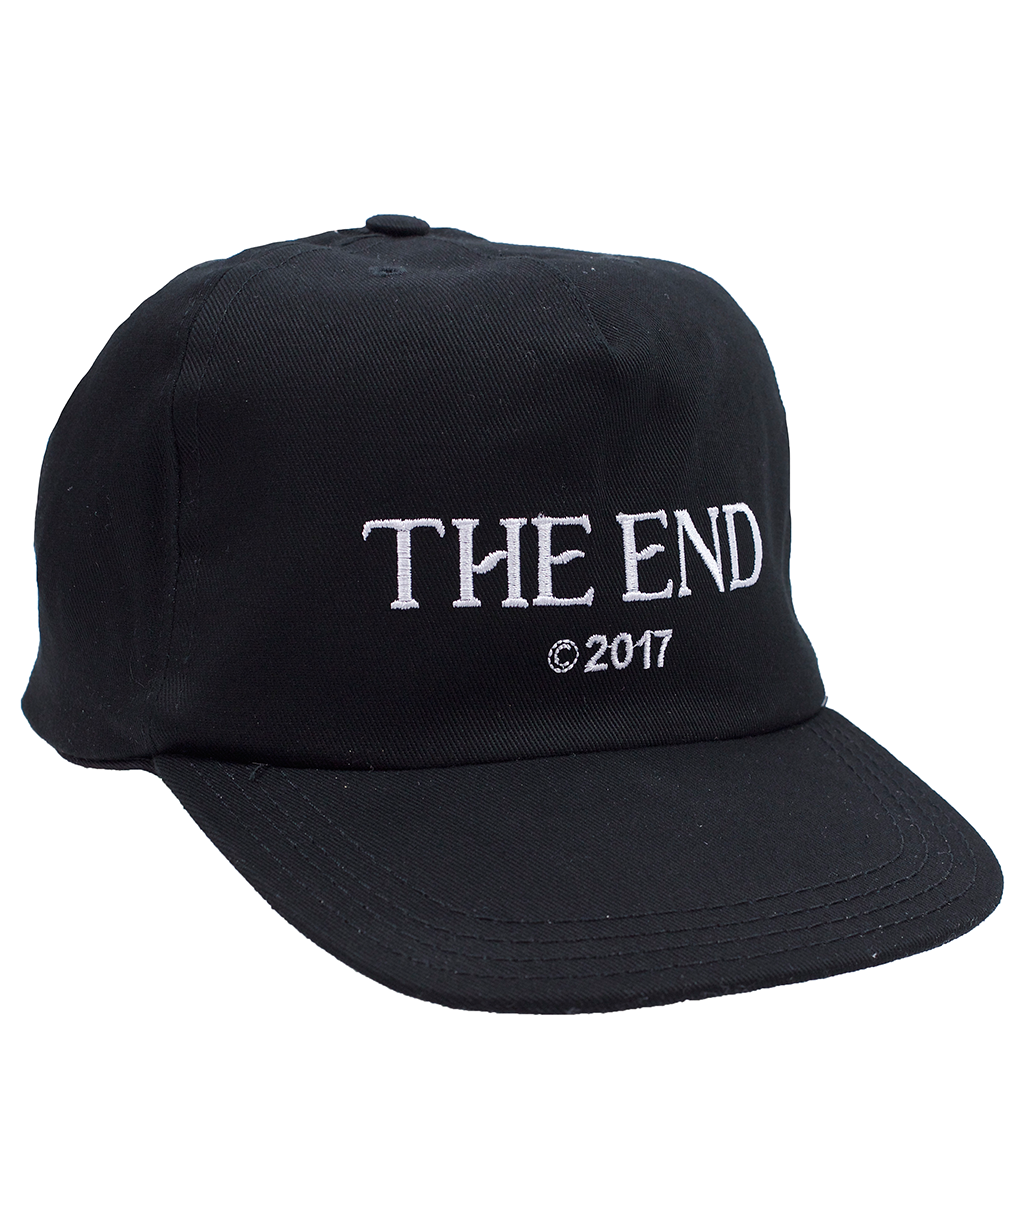 Off-White Black The End Cap – Antoinette Boutique 8daecd2325f4